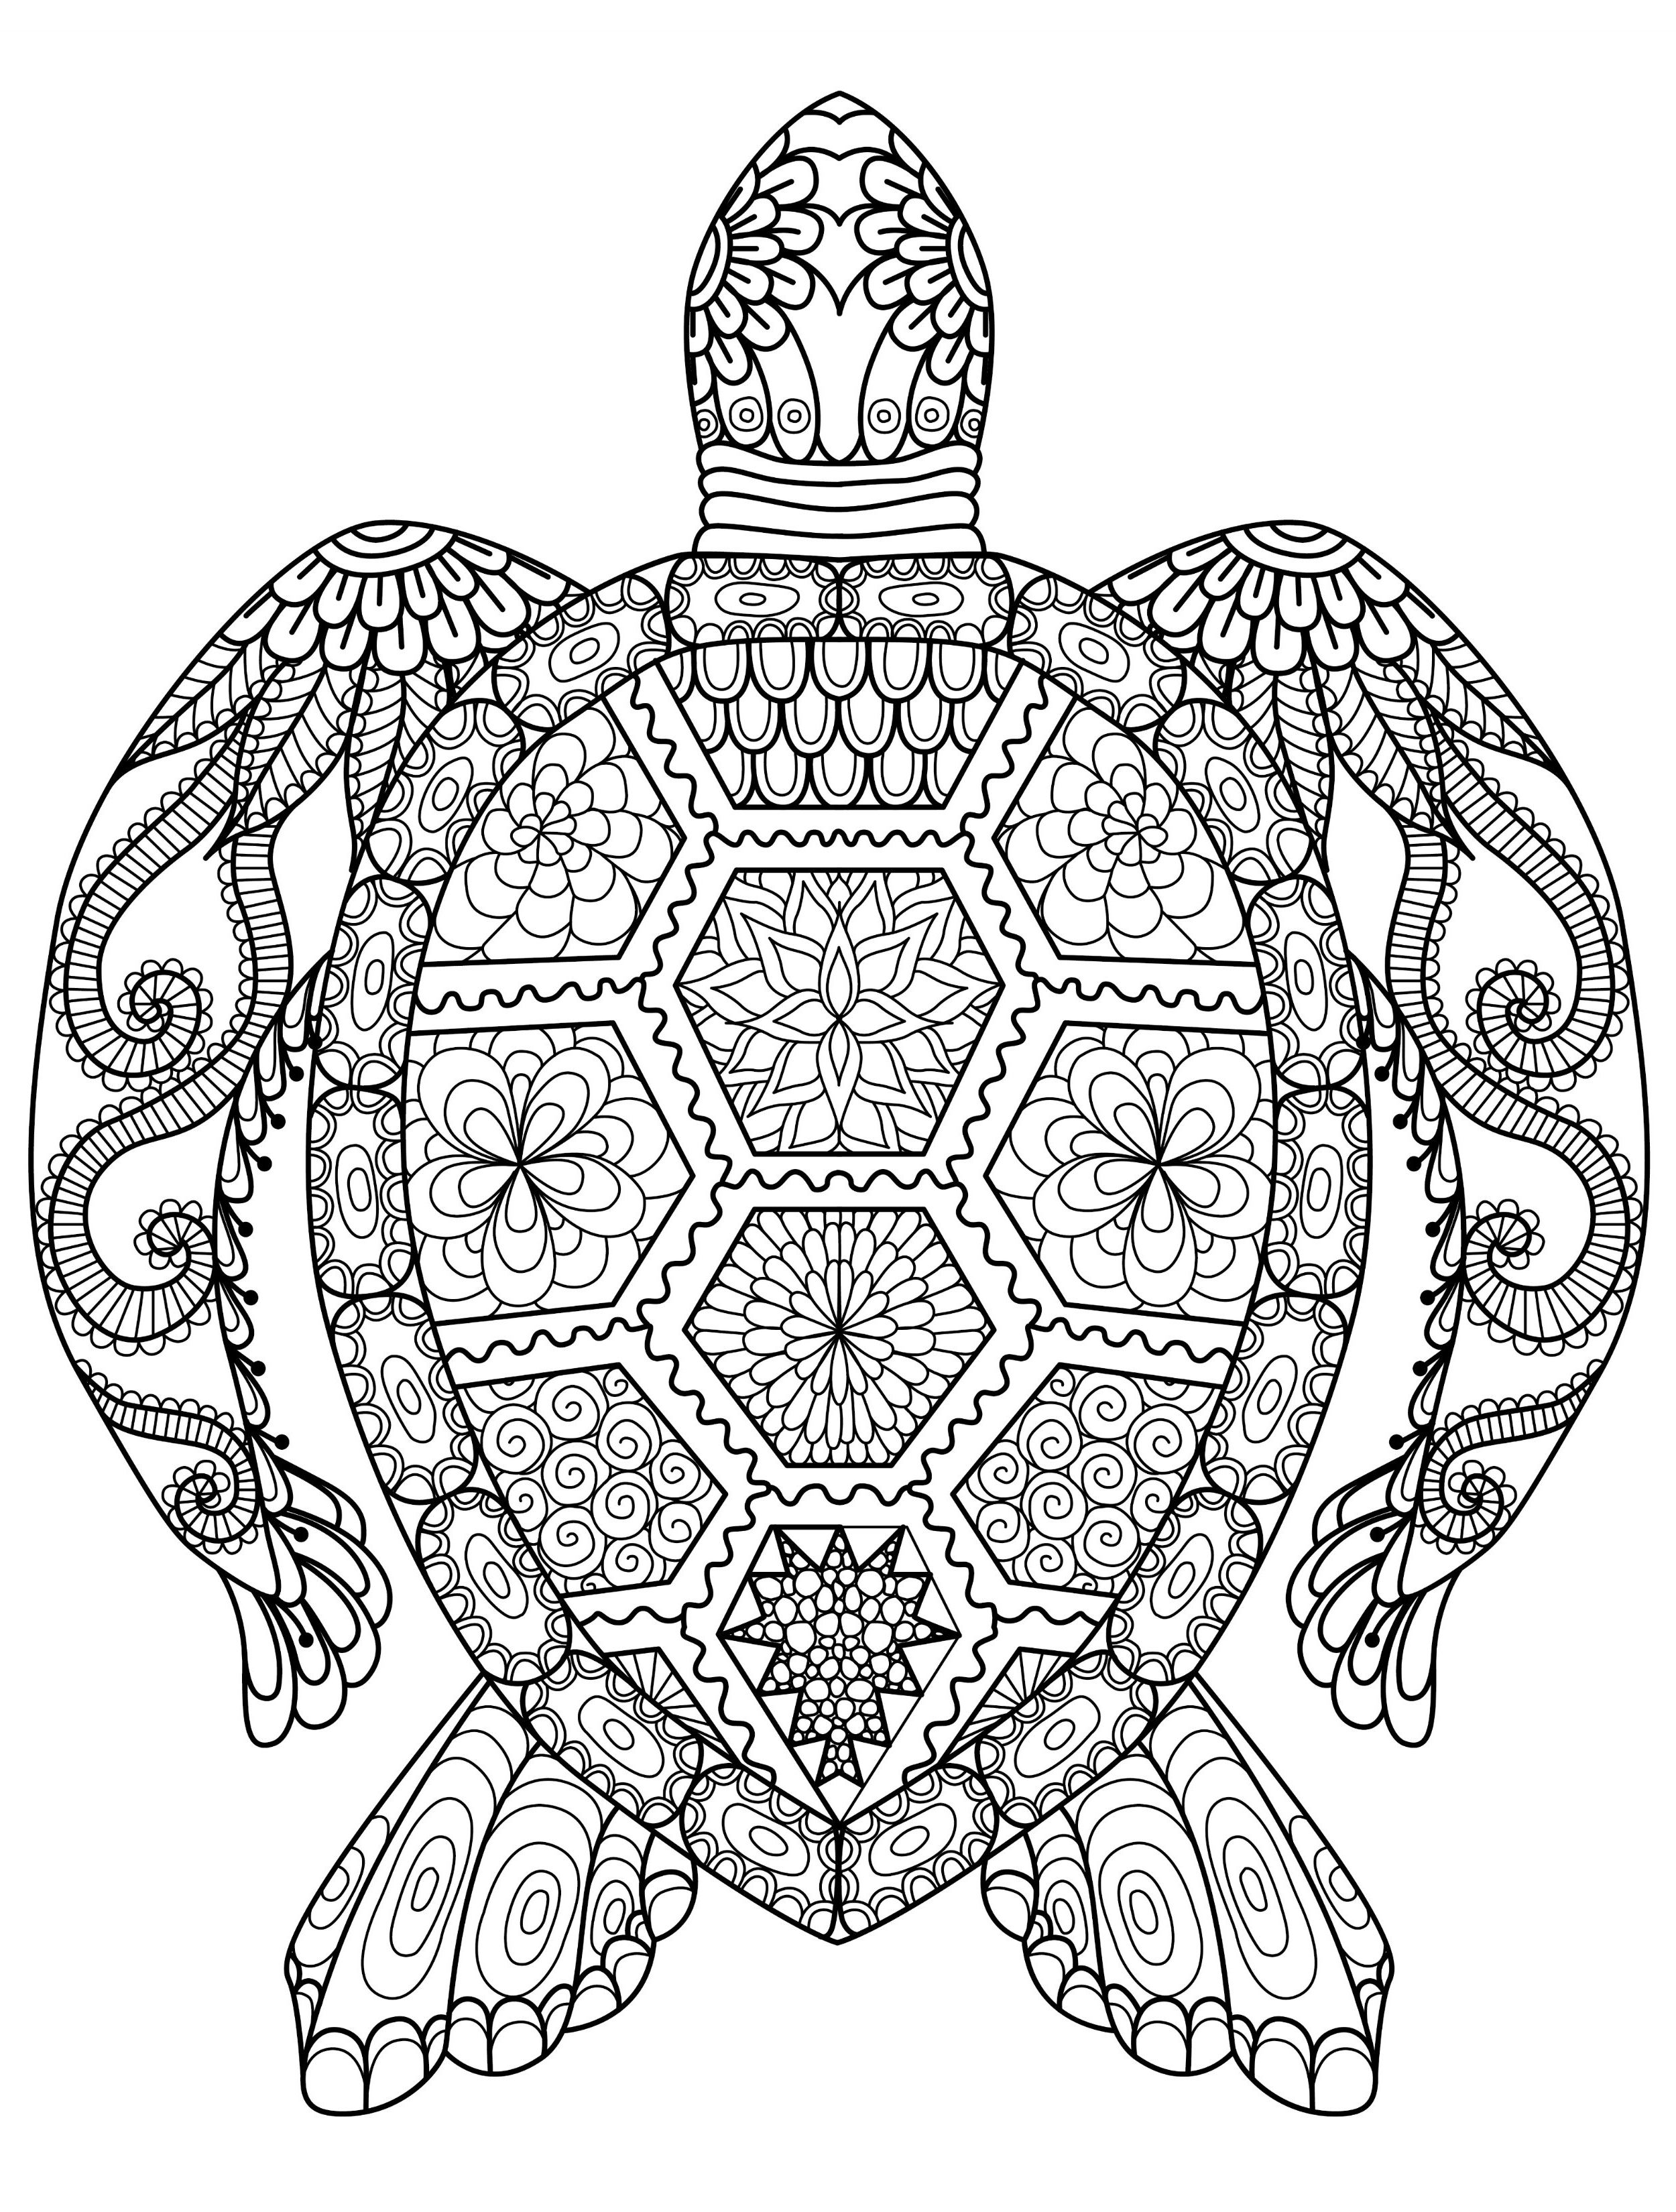 Coloring Games For Adults Turtle Coloring Pages Animal Coloring Books Mandala Coloring Pages